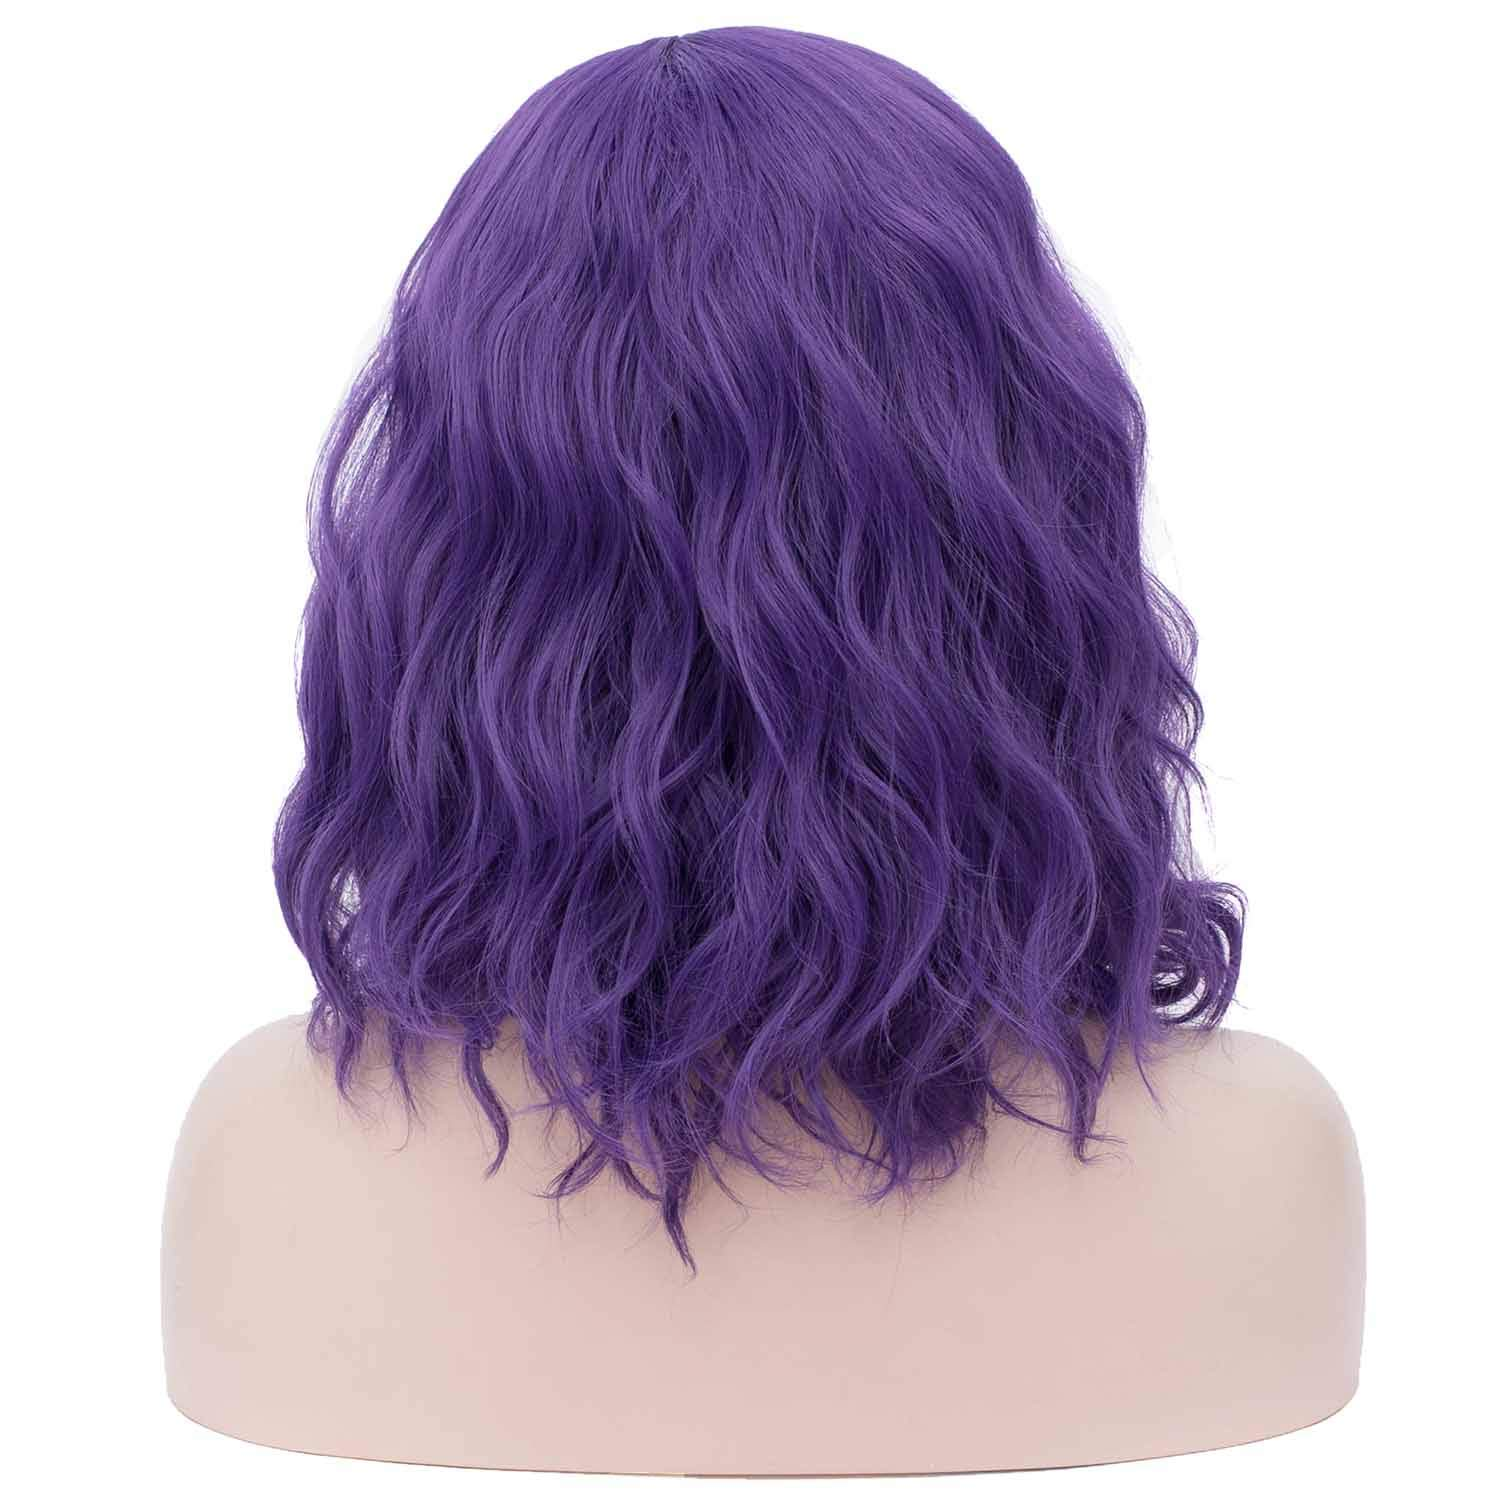 Mildiso Short Blue Wigs Curly Wavy Wig for Women Blue Synthetic Hair Cosplay Halloween Wigs with Wig Cap M004B